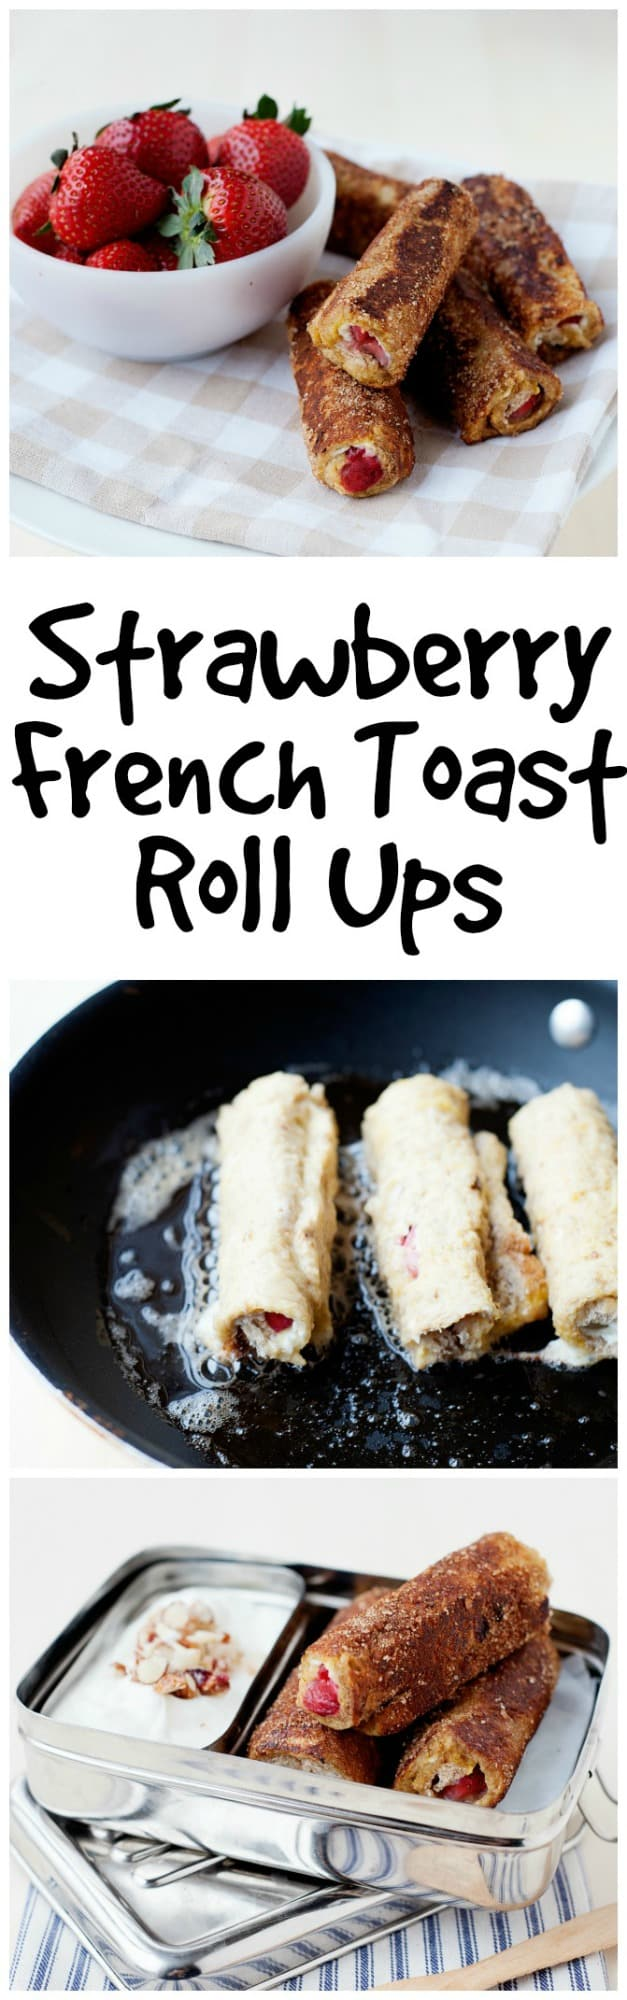 Overcome the daily 'what to have for breakfast' obstacle with these Strawberry French Toast Roll Ups. Easy to make ahead and take on the go!